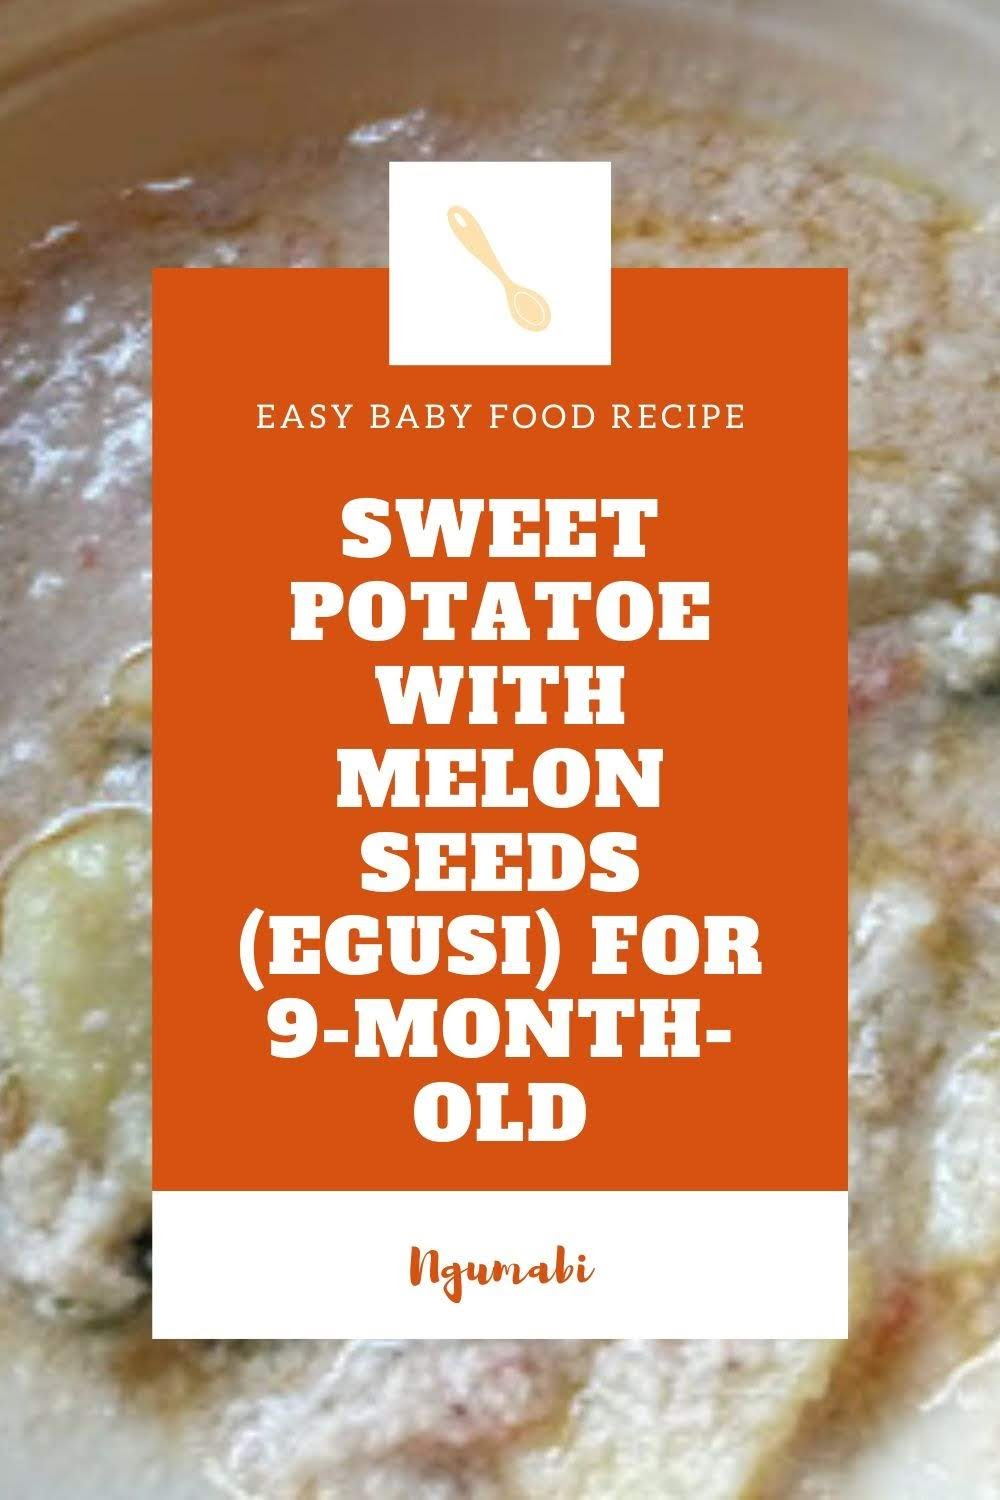 Sweet Potatoe With Melon Seeds (Egusi) For 9-Month-Old